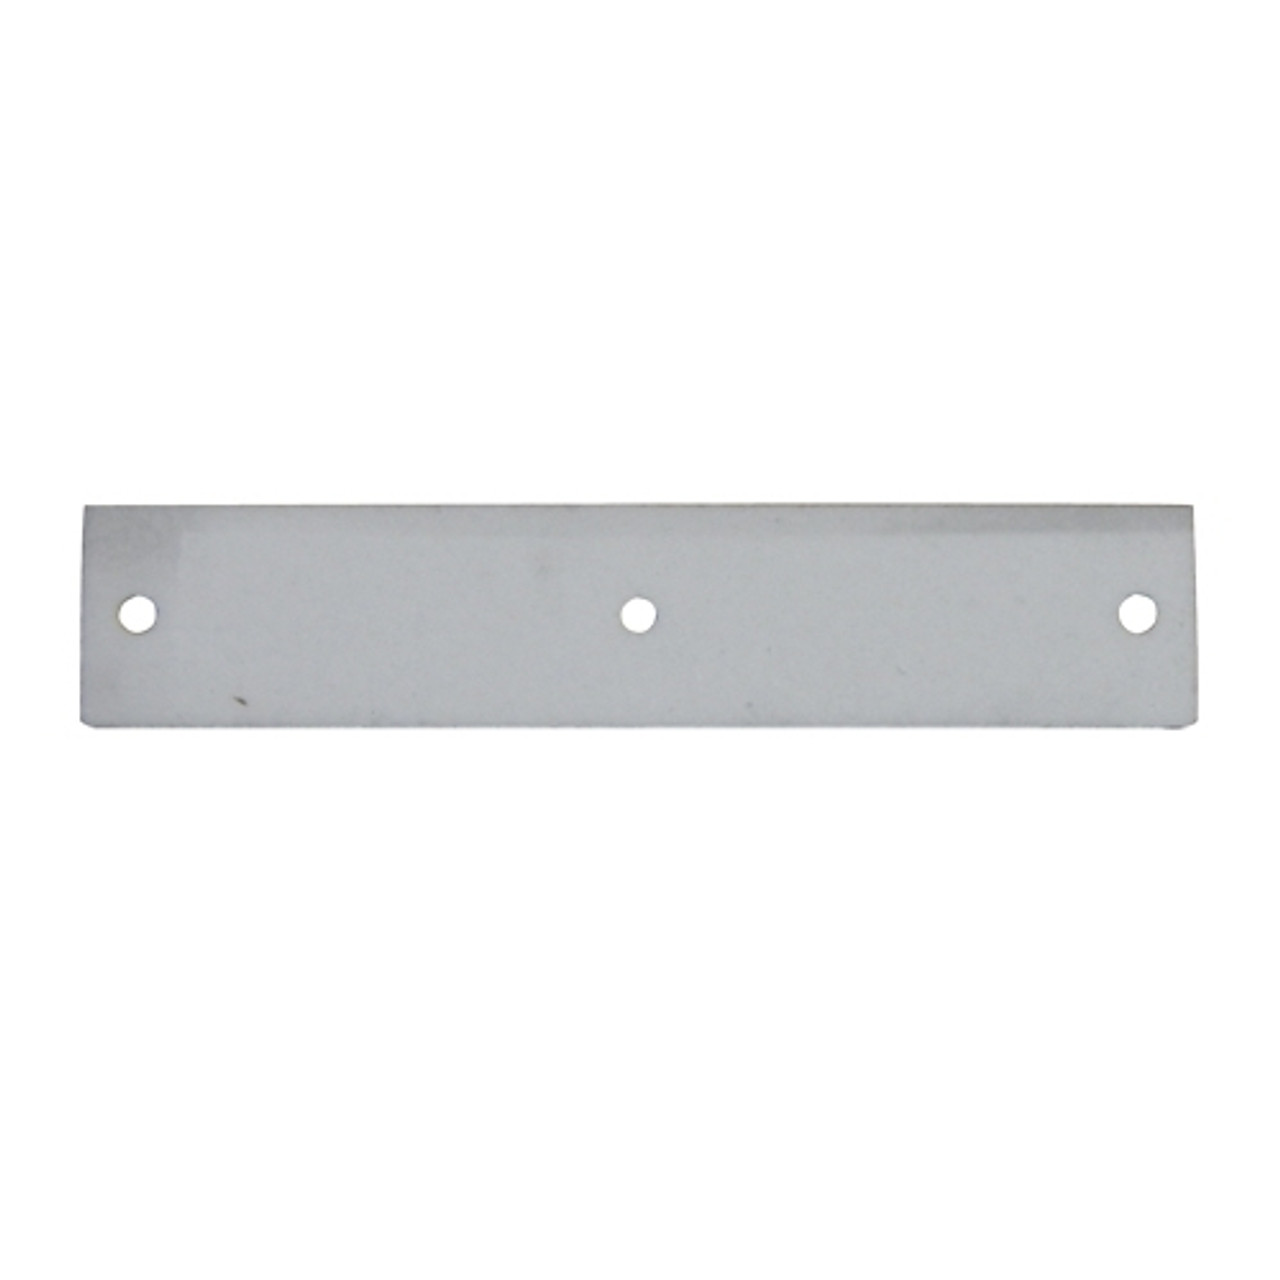 Interior Water Coil Cover Plate Gasket For Us Stove